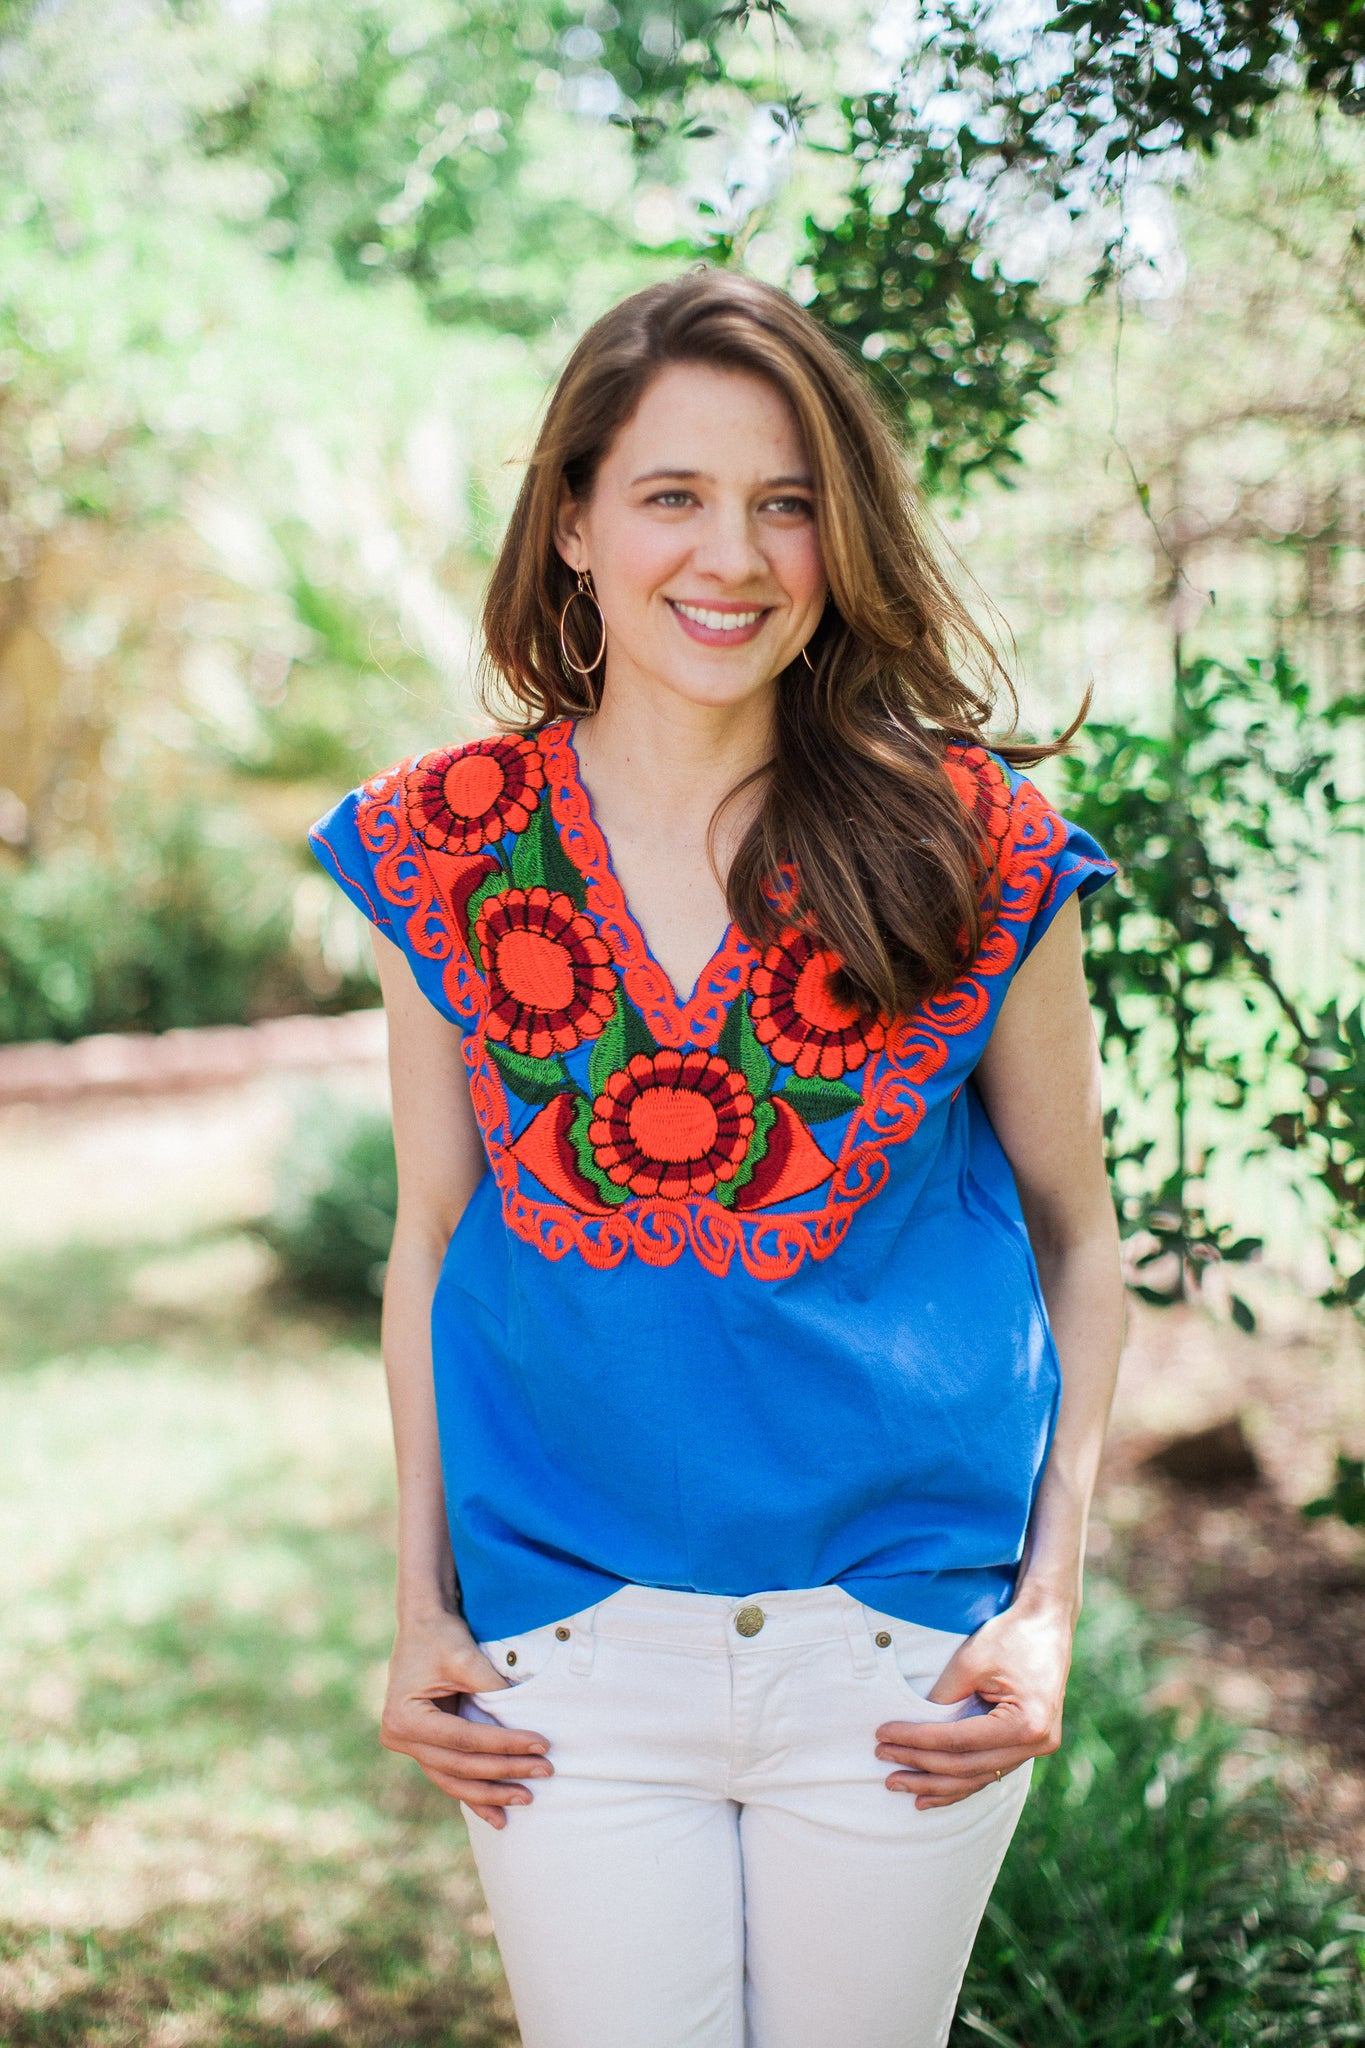 Royal Blue with Orange La Bohemia Blouse